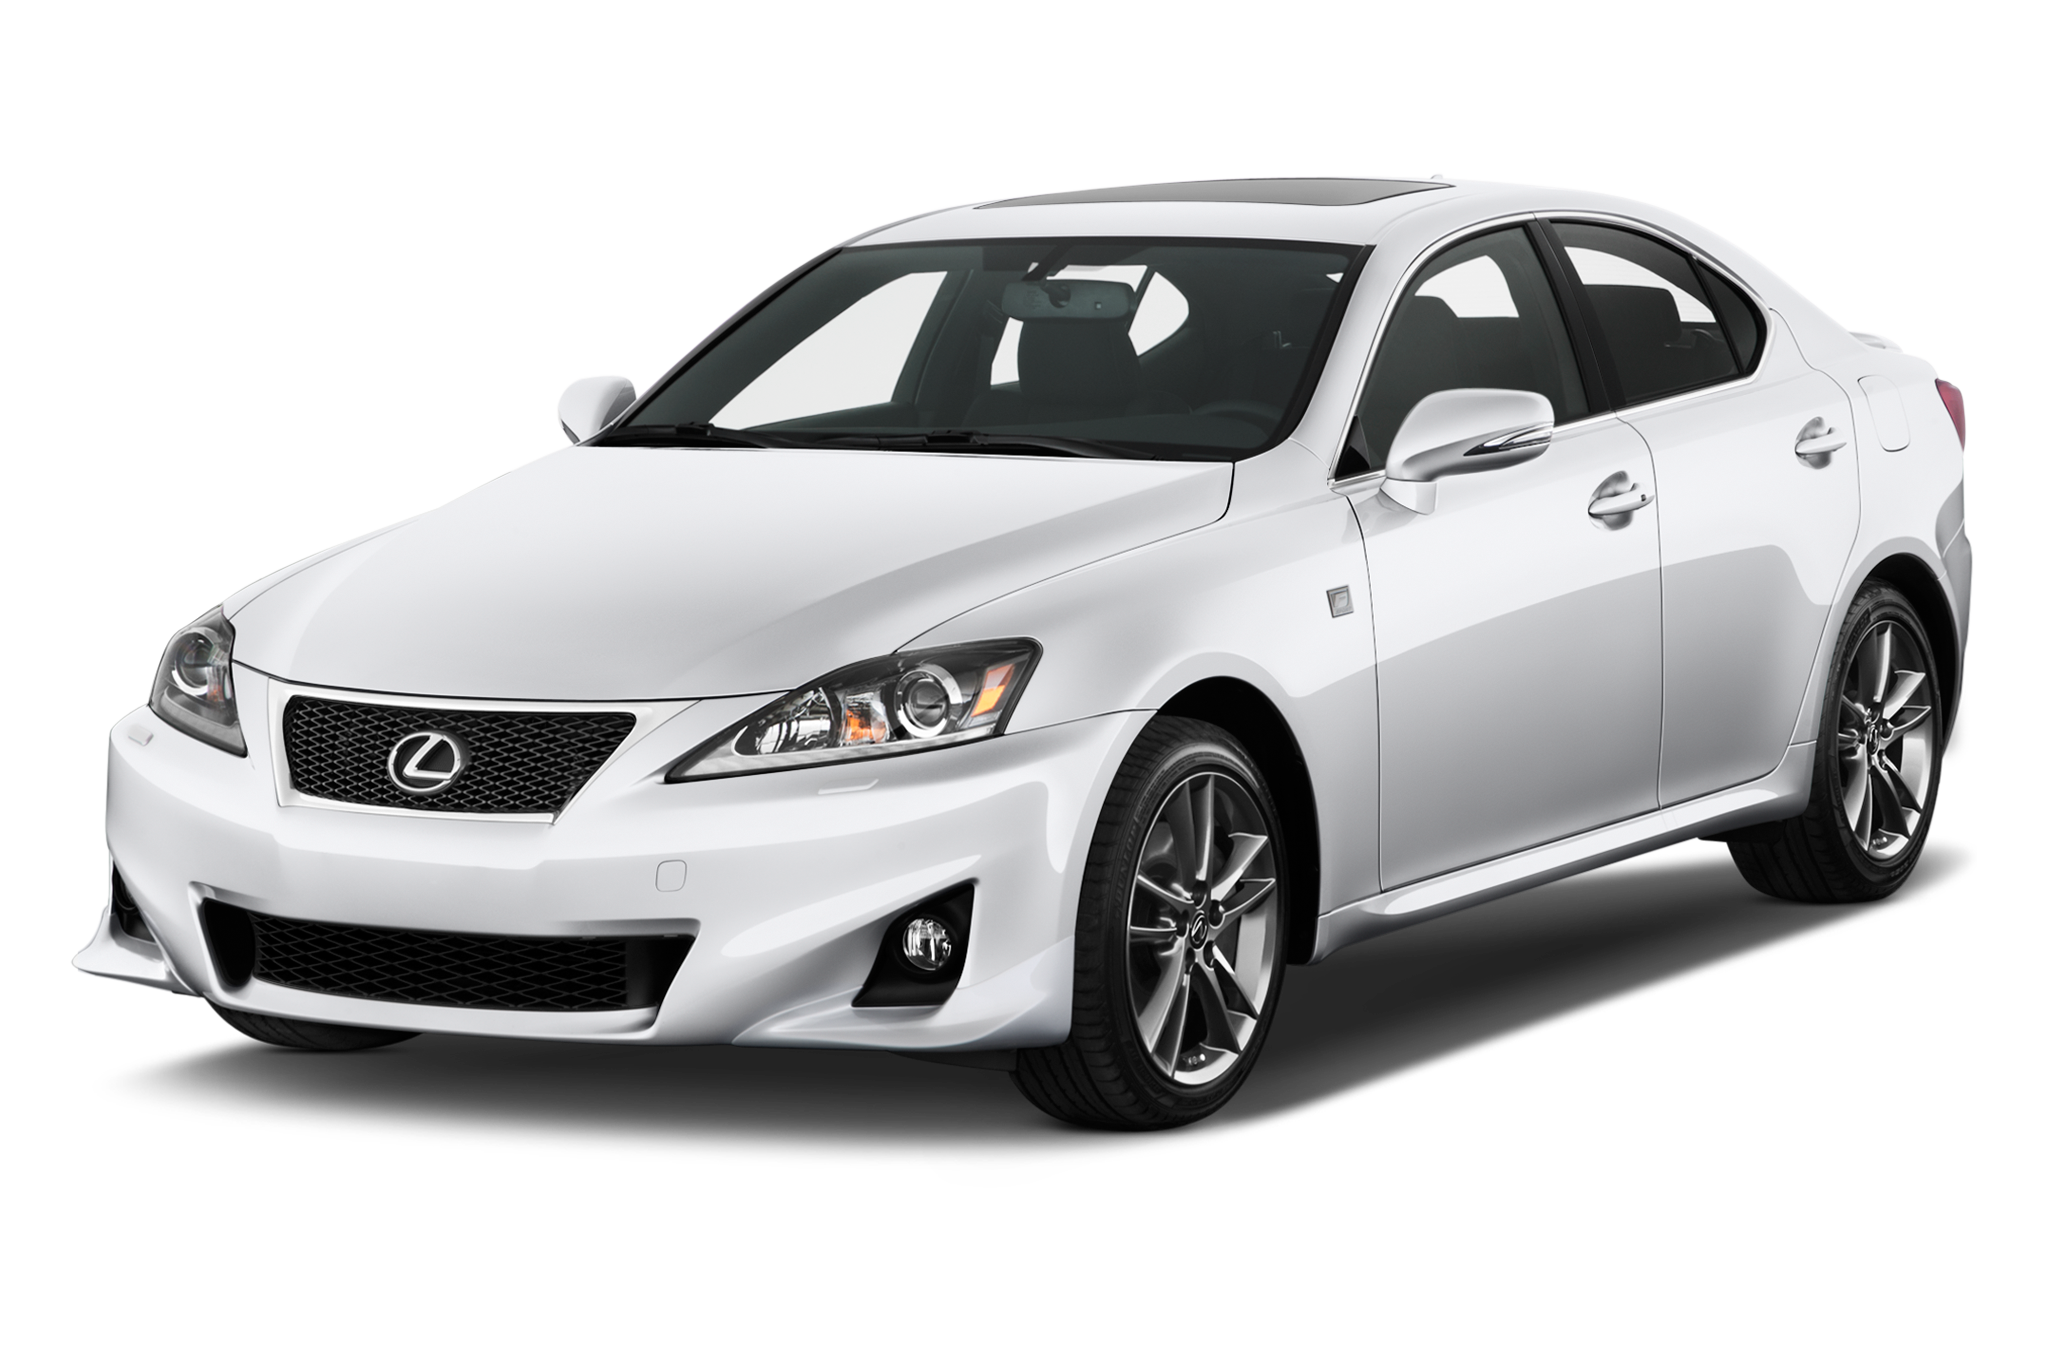 2012 Lexus Is 350 #19